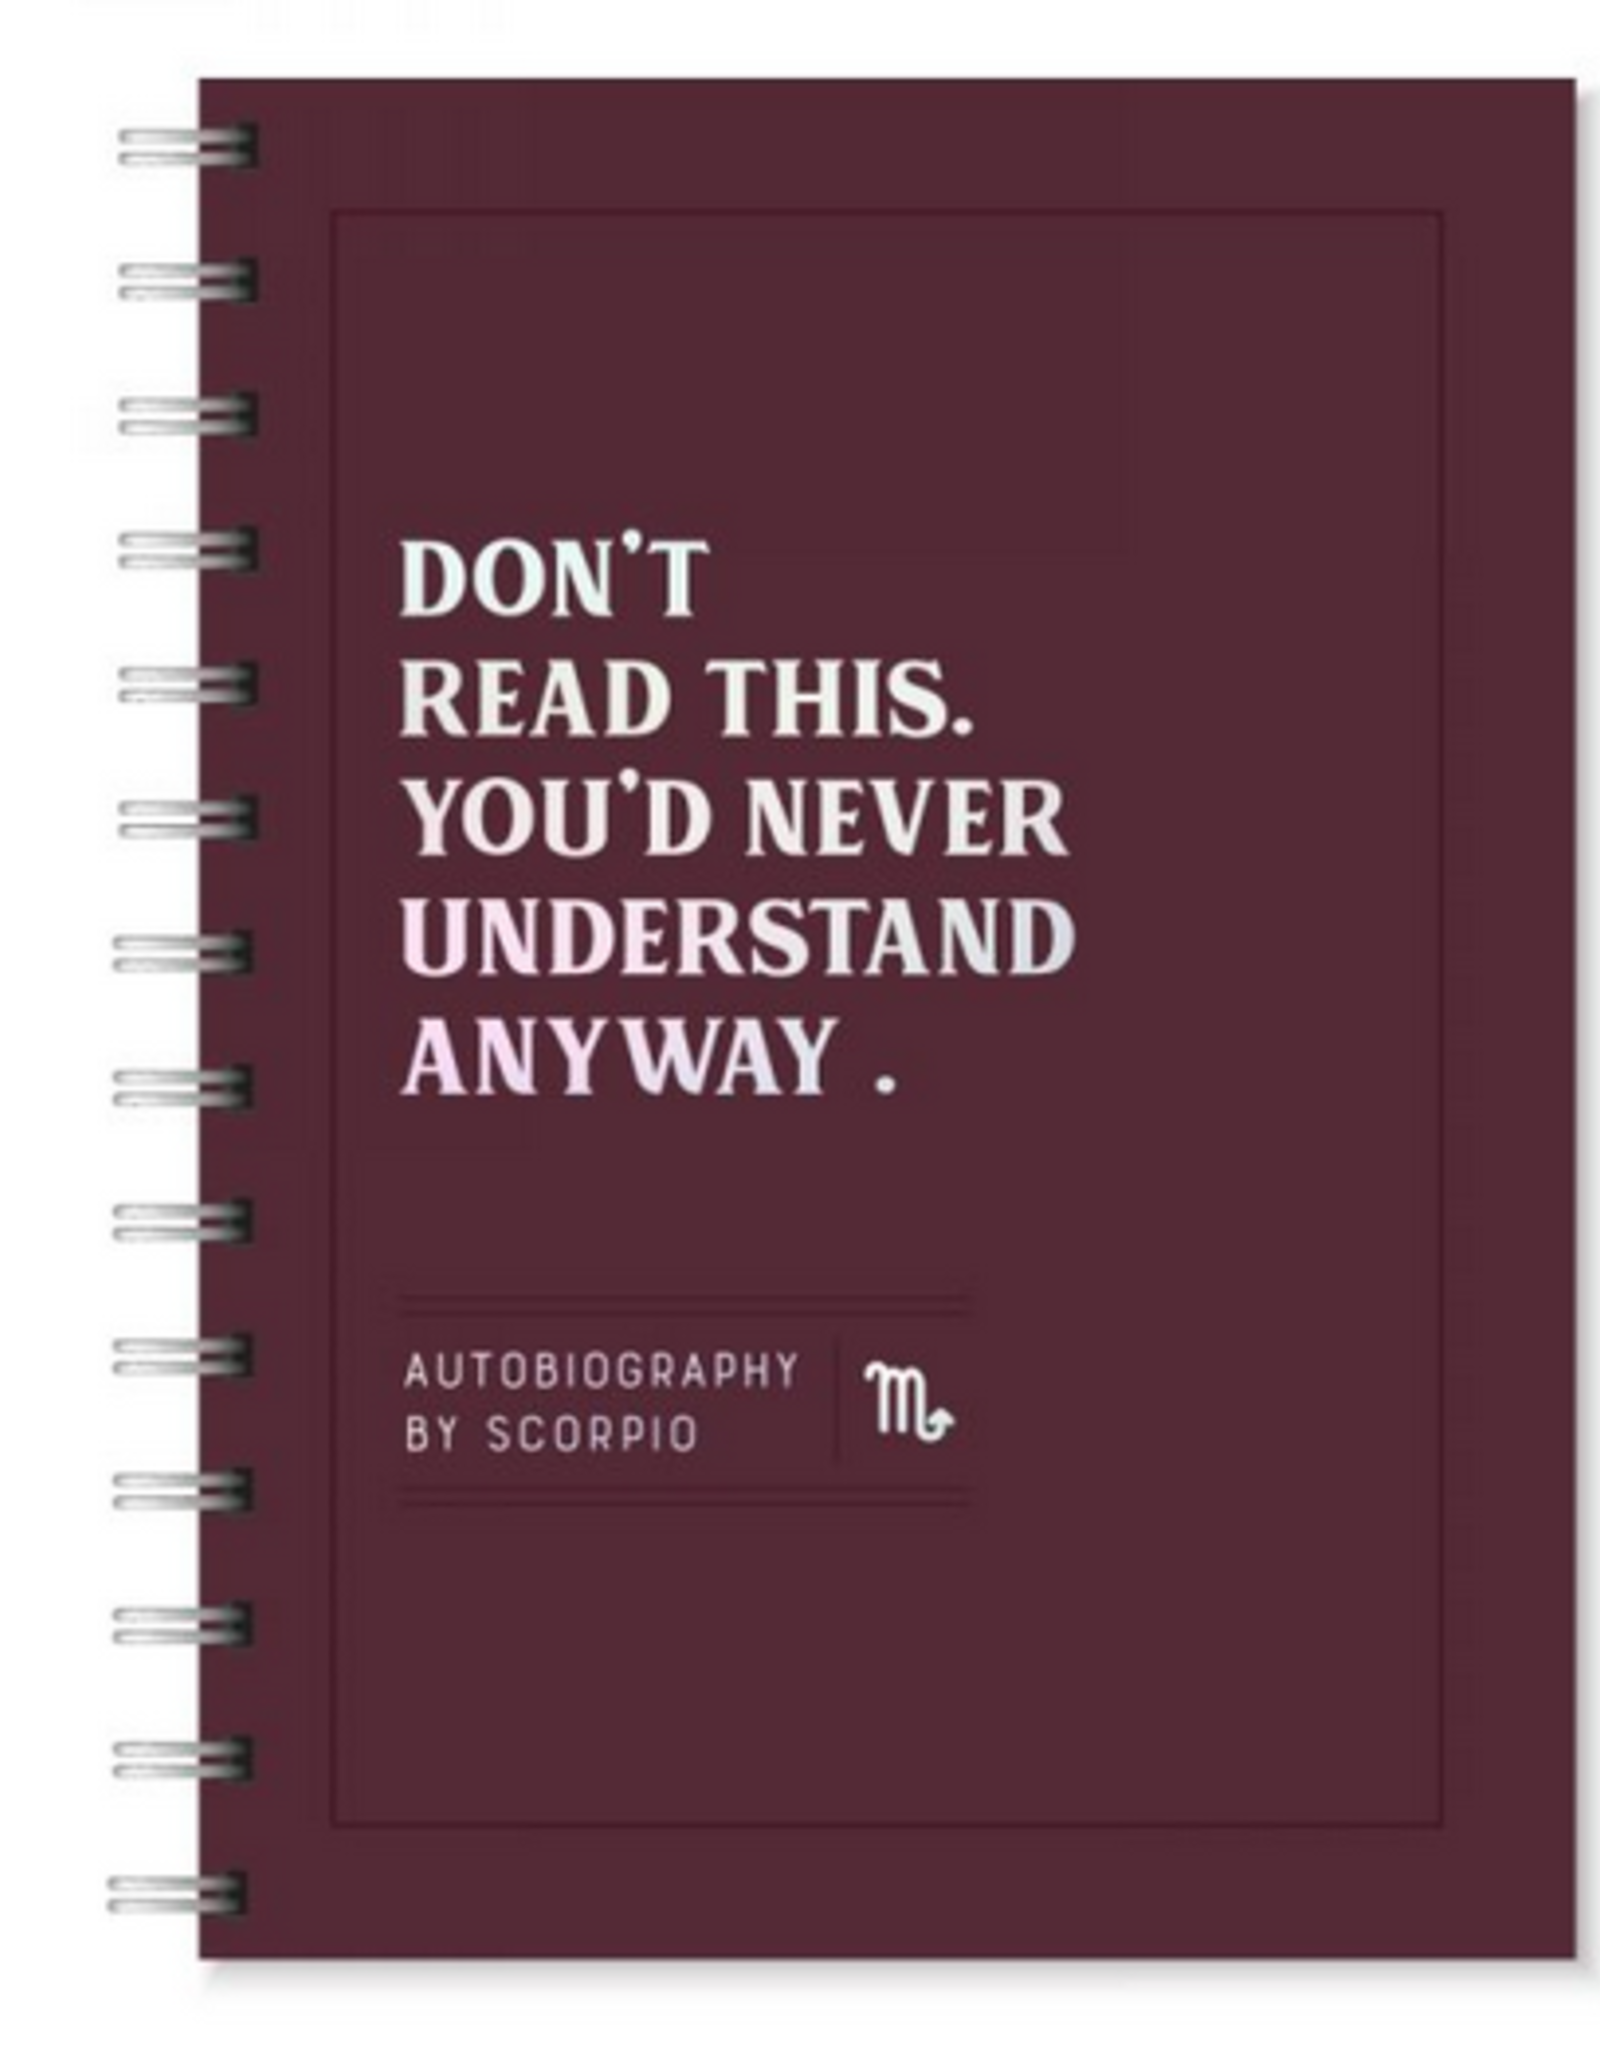 Scorpio Autobiography Journal